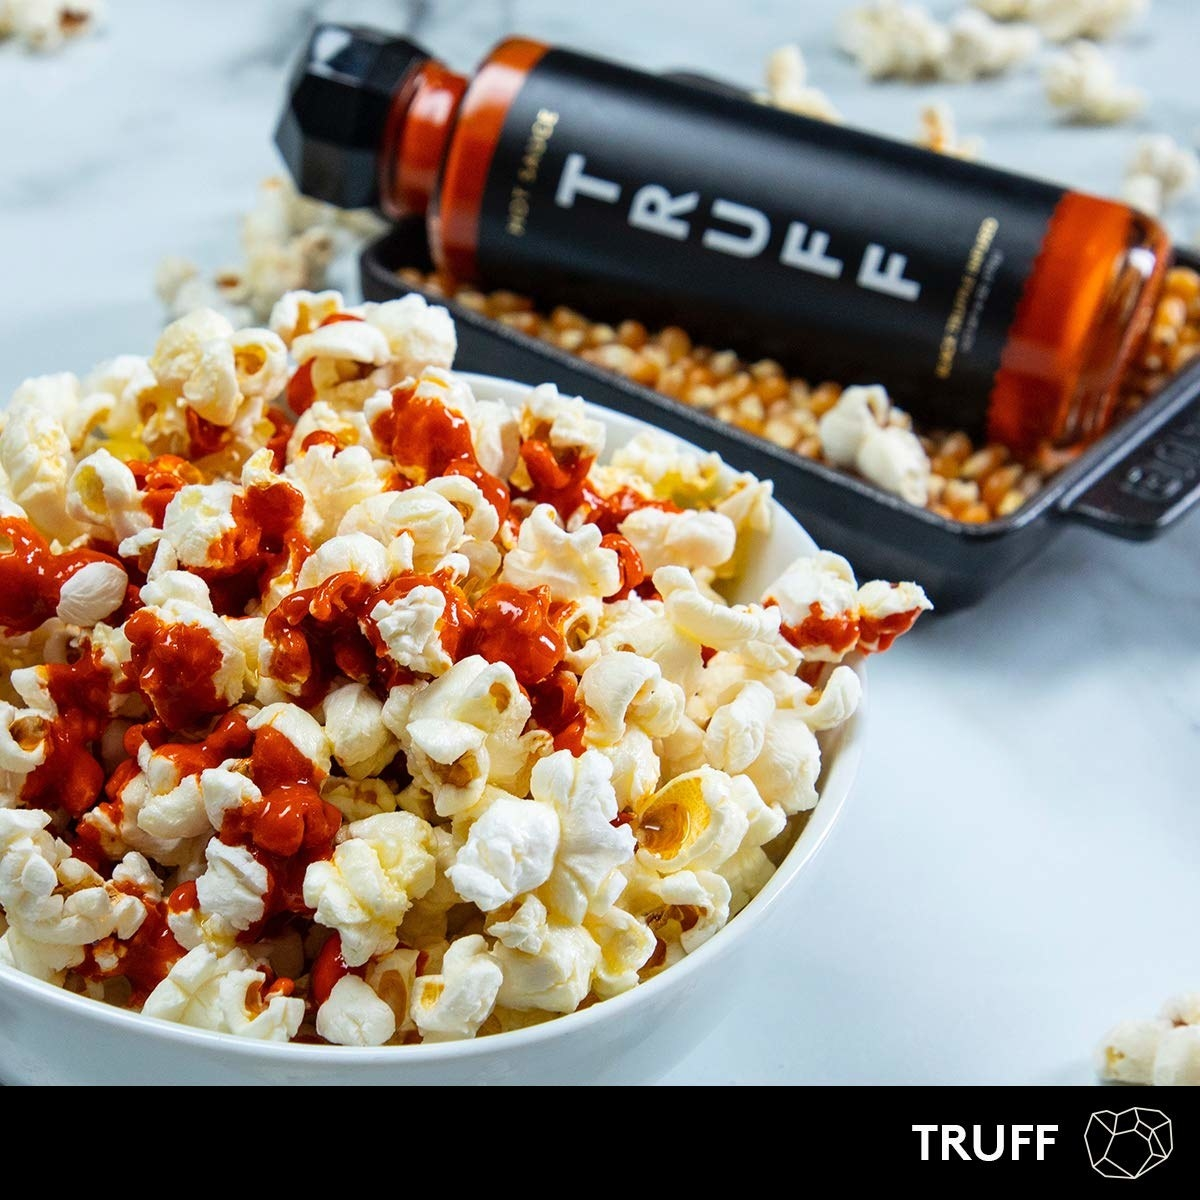 the hot sauce drizzled over popcorn